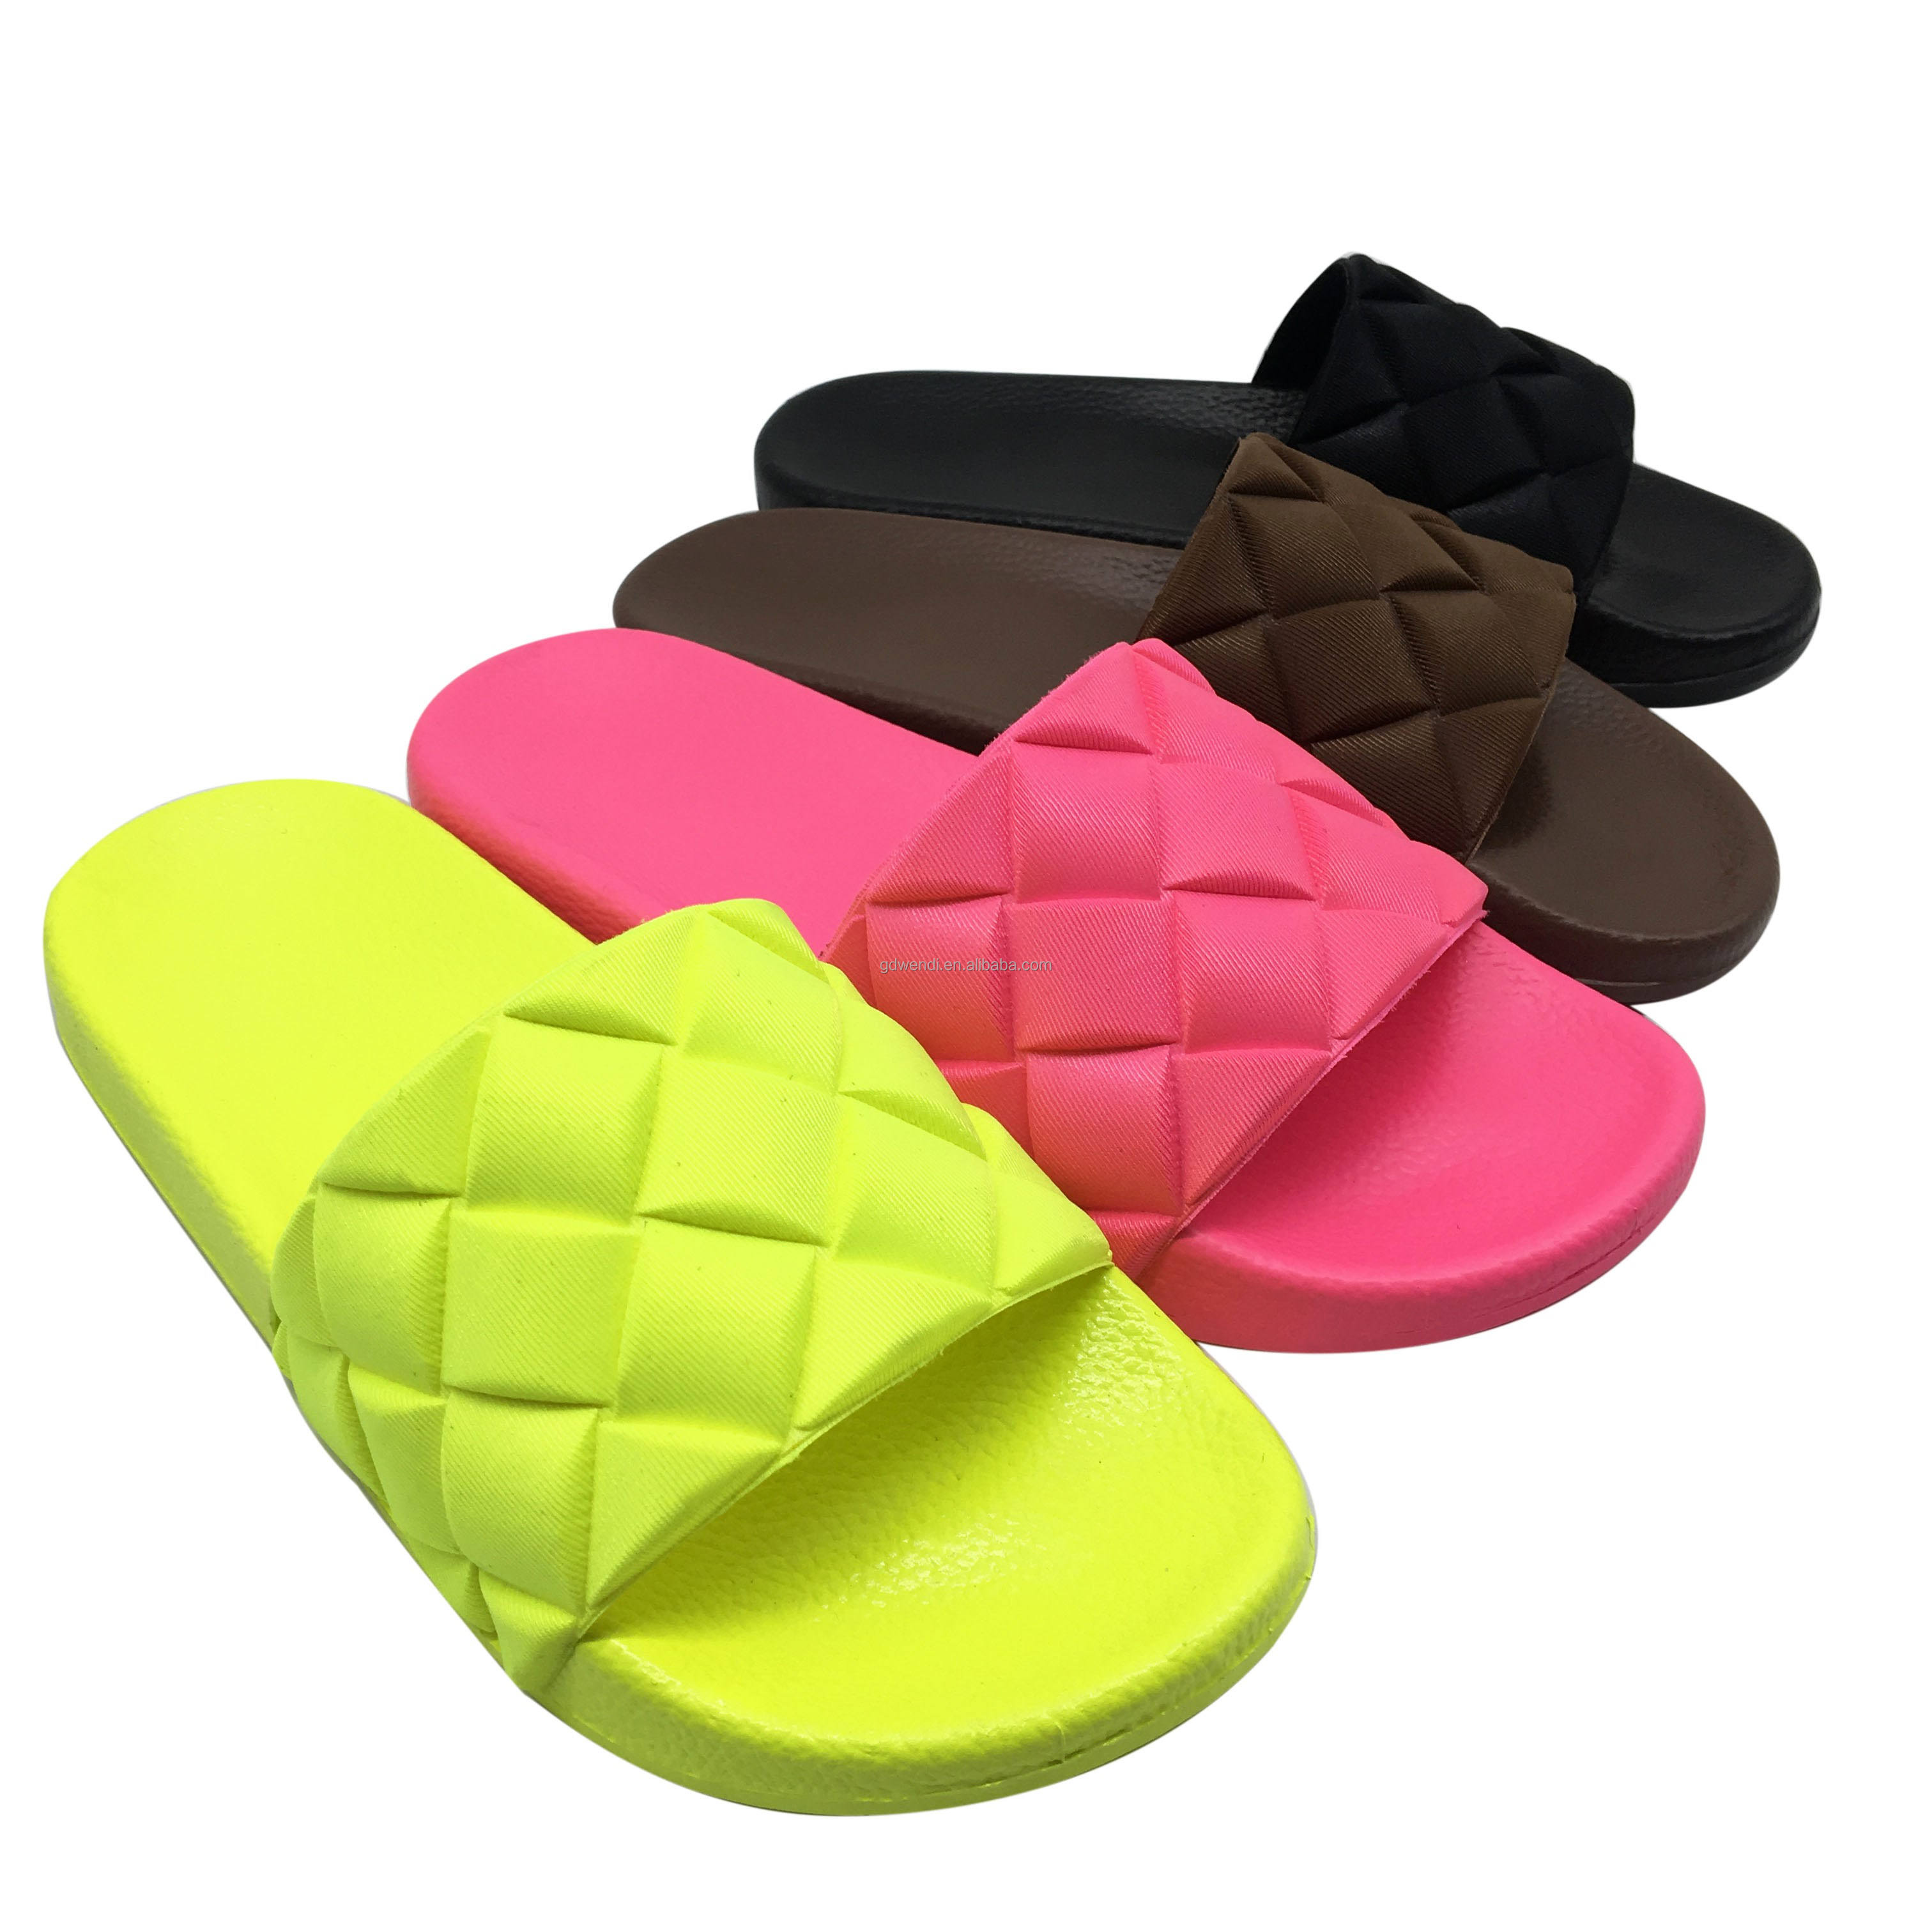 Summer Indoor Non-slip Casual Women Shoes PVC Comfortable Household Slippers For Women